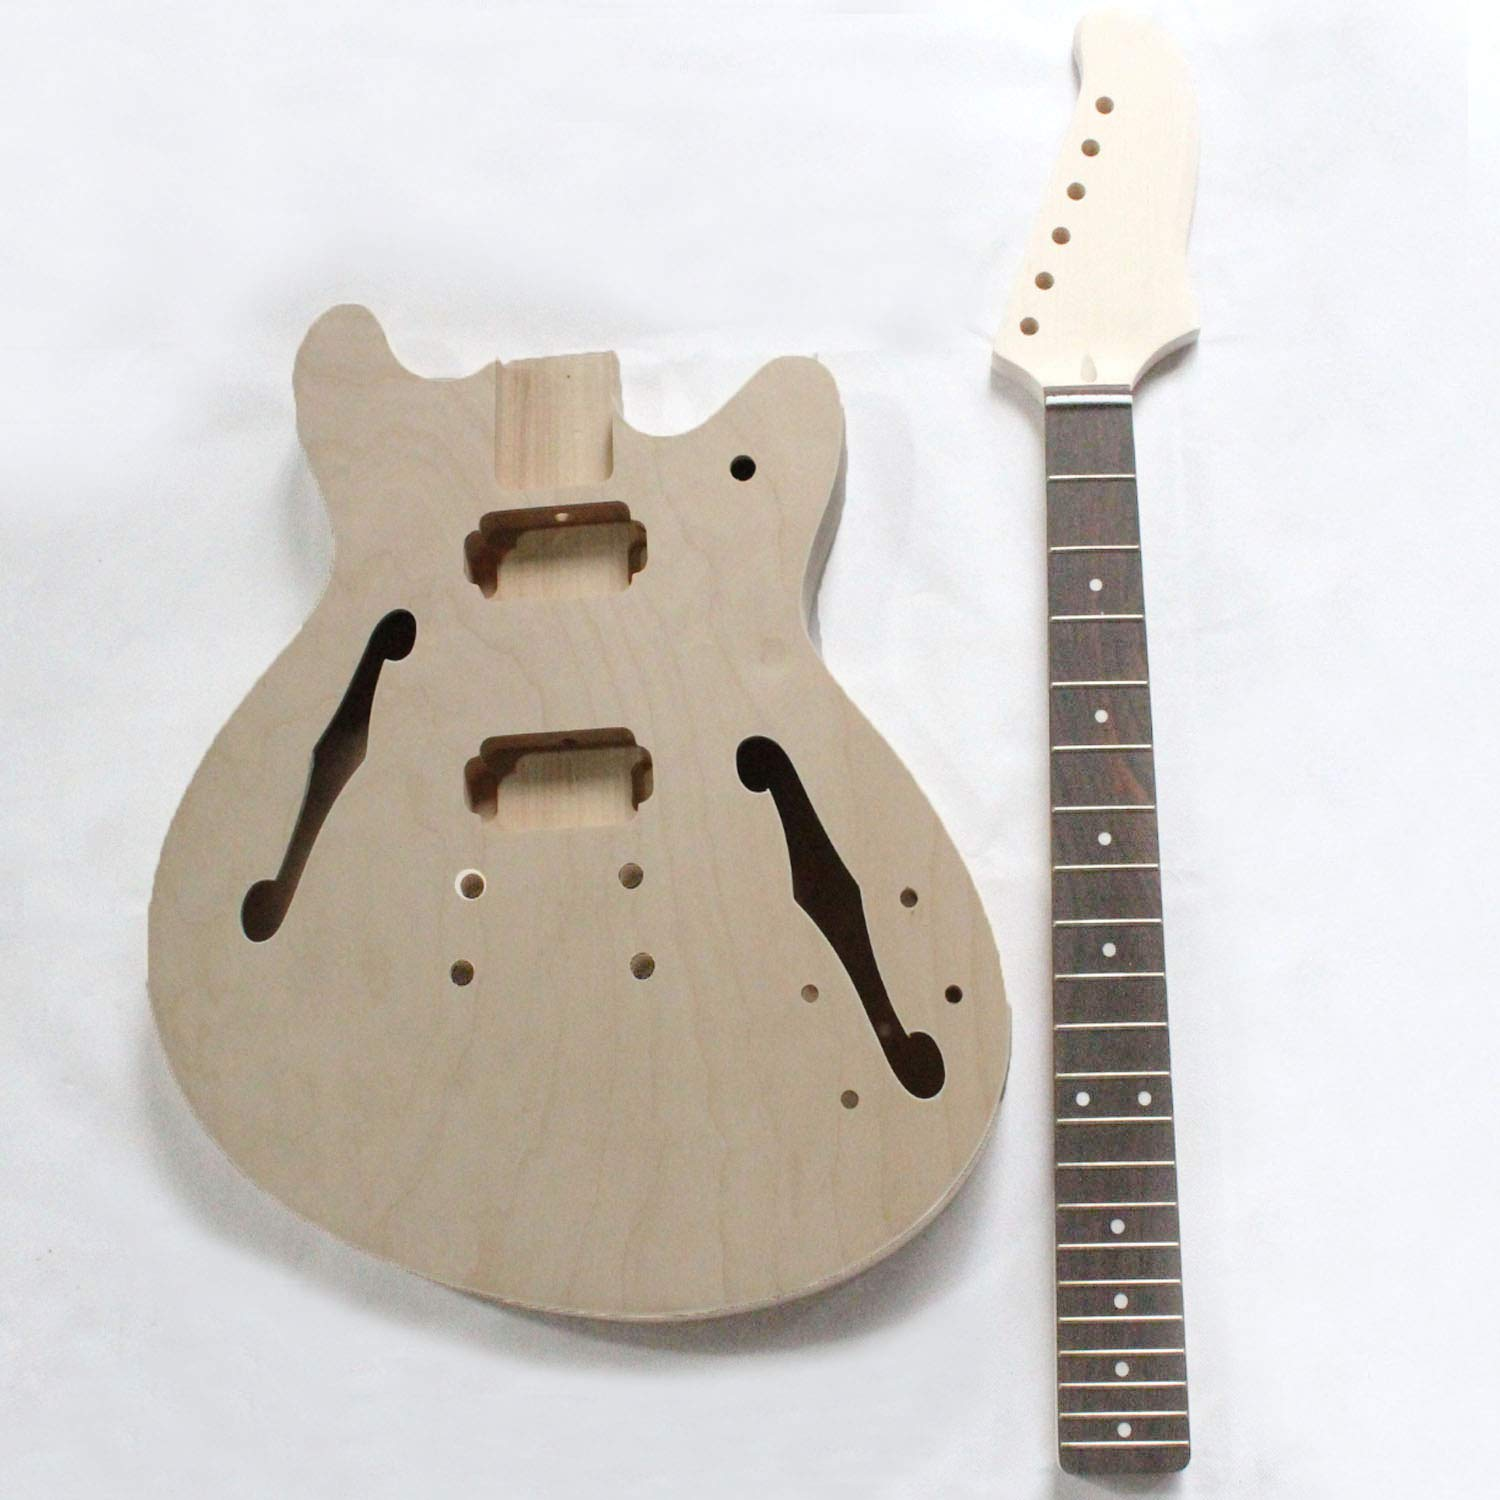 PROJECT ELECTRI SEMI-HOLLOW GUITAR BUILDER KIT DIY WITH ALL ACCESSORIES by MUSOO